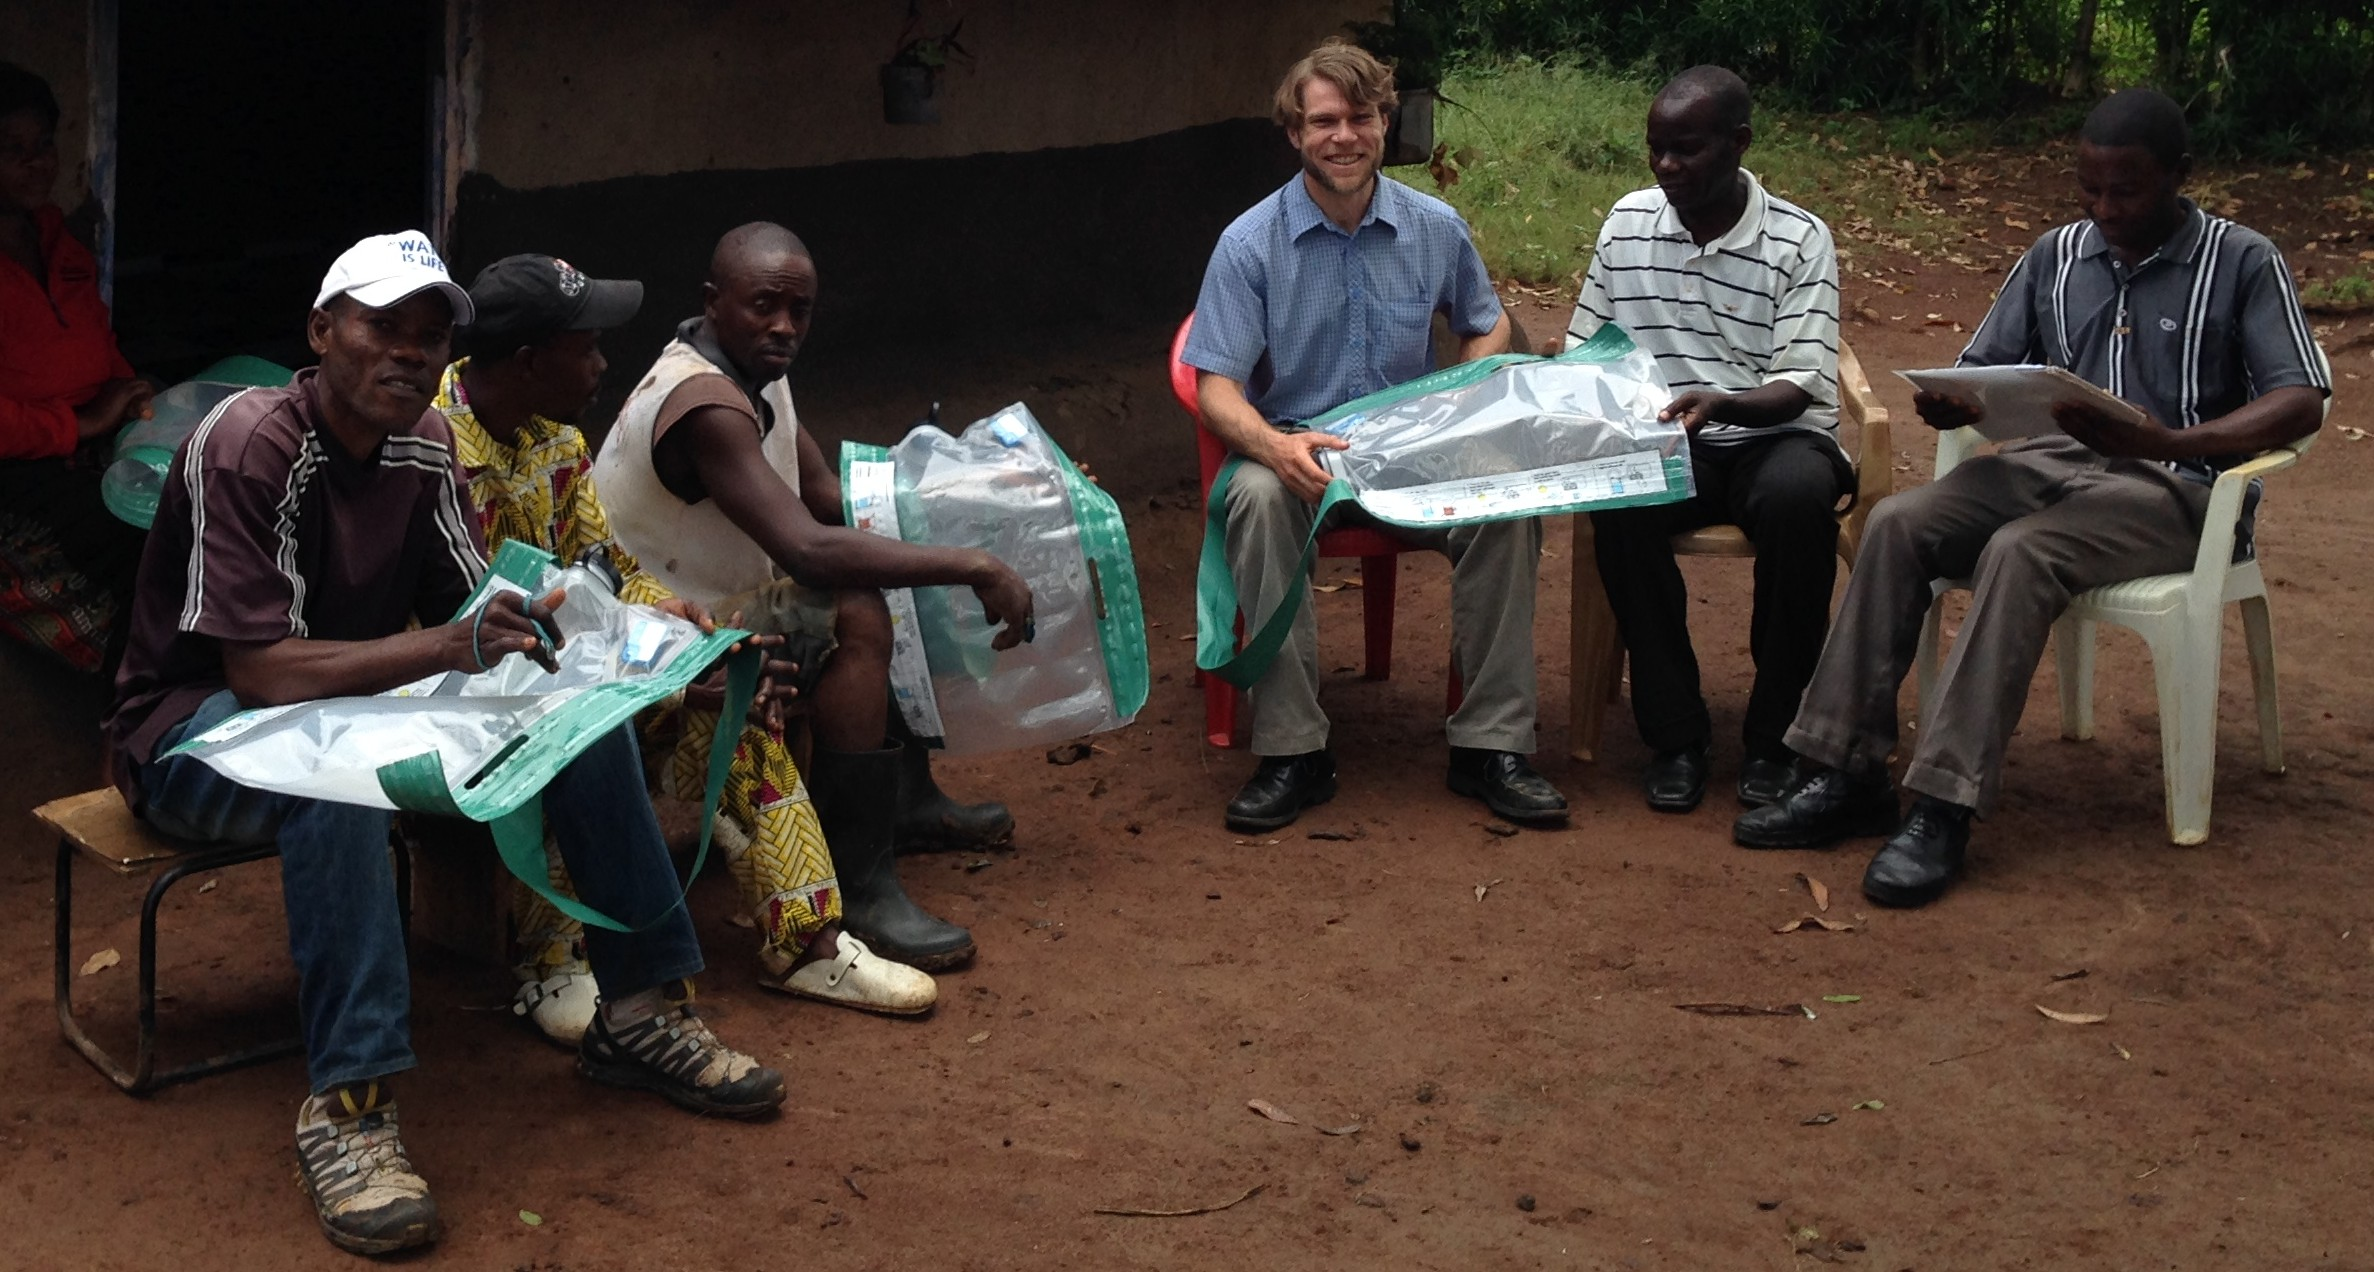 Charlie teaching a small group in Kyangwali Refugee Settlement how to use Smart Solar Purifiers.